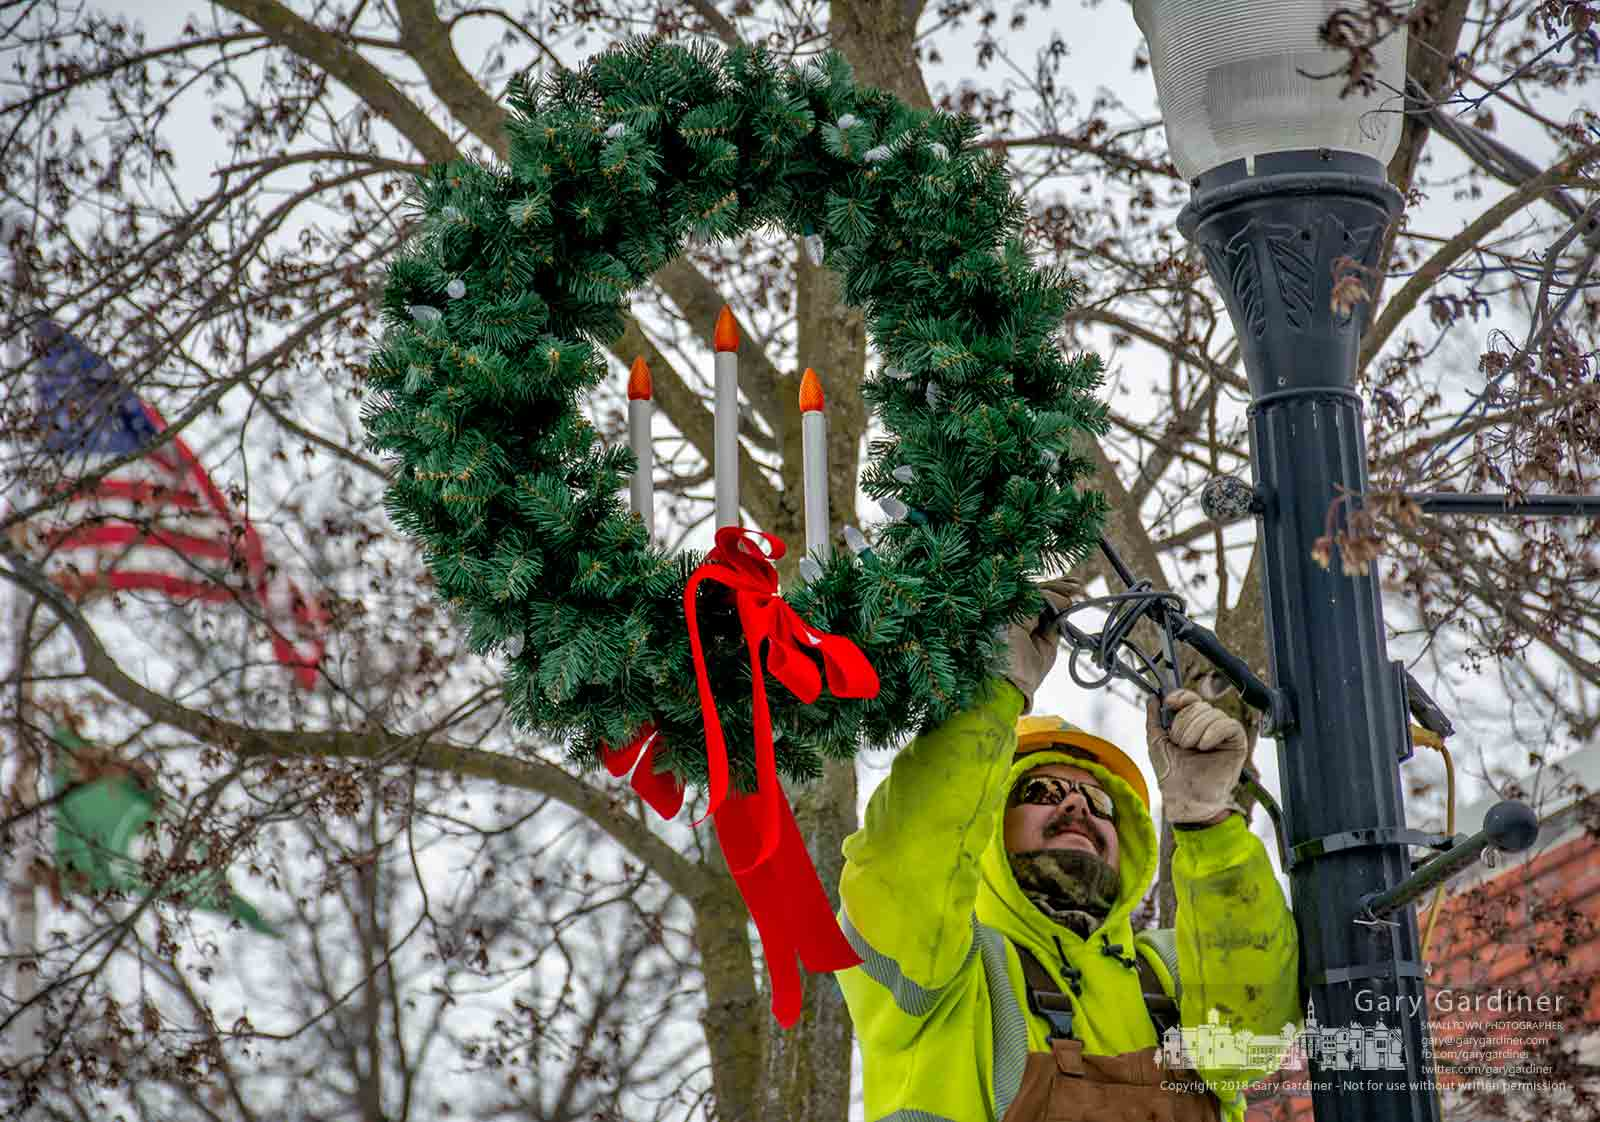 A city service worker removes the last decorative wreath from Winter Street in Uptown Westerville marking the end of street light decorations for the Christmas season. My Final Photo for Jan. 3, 2018.